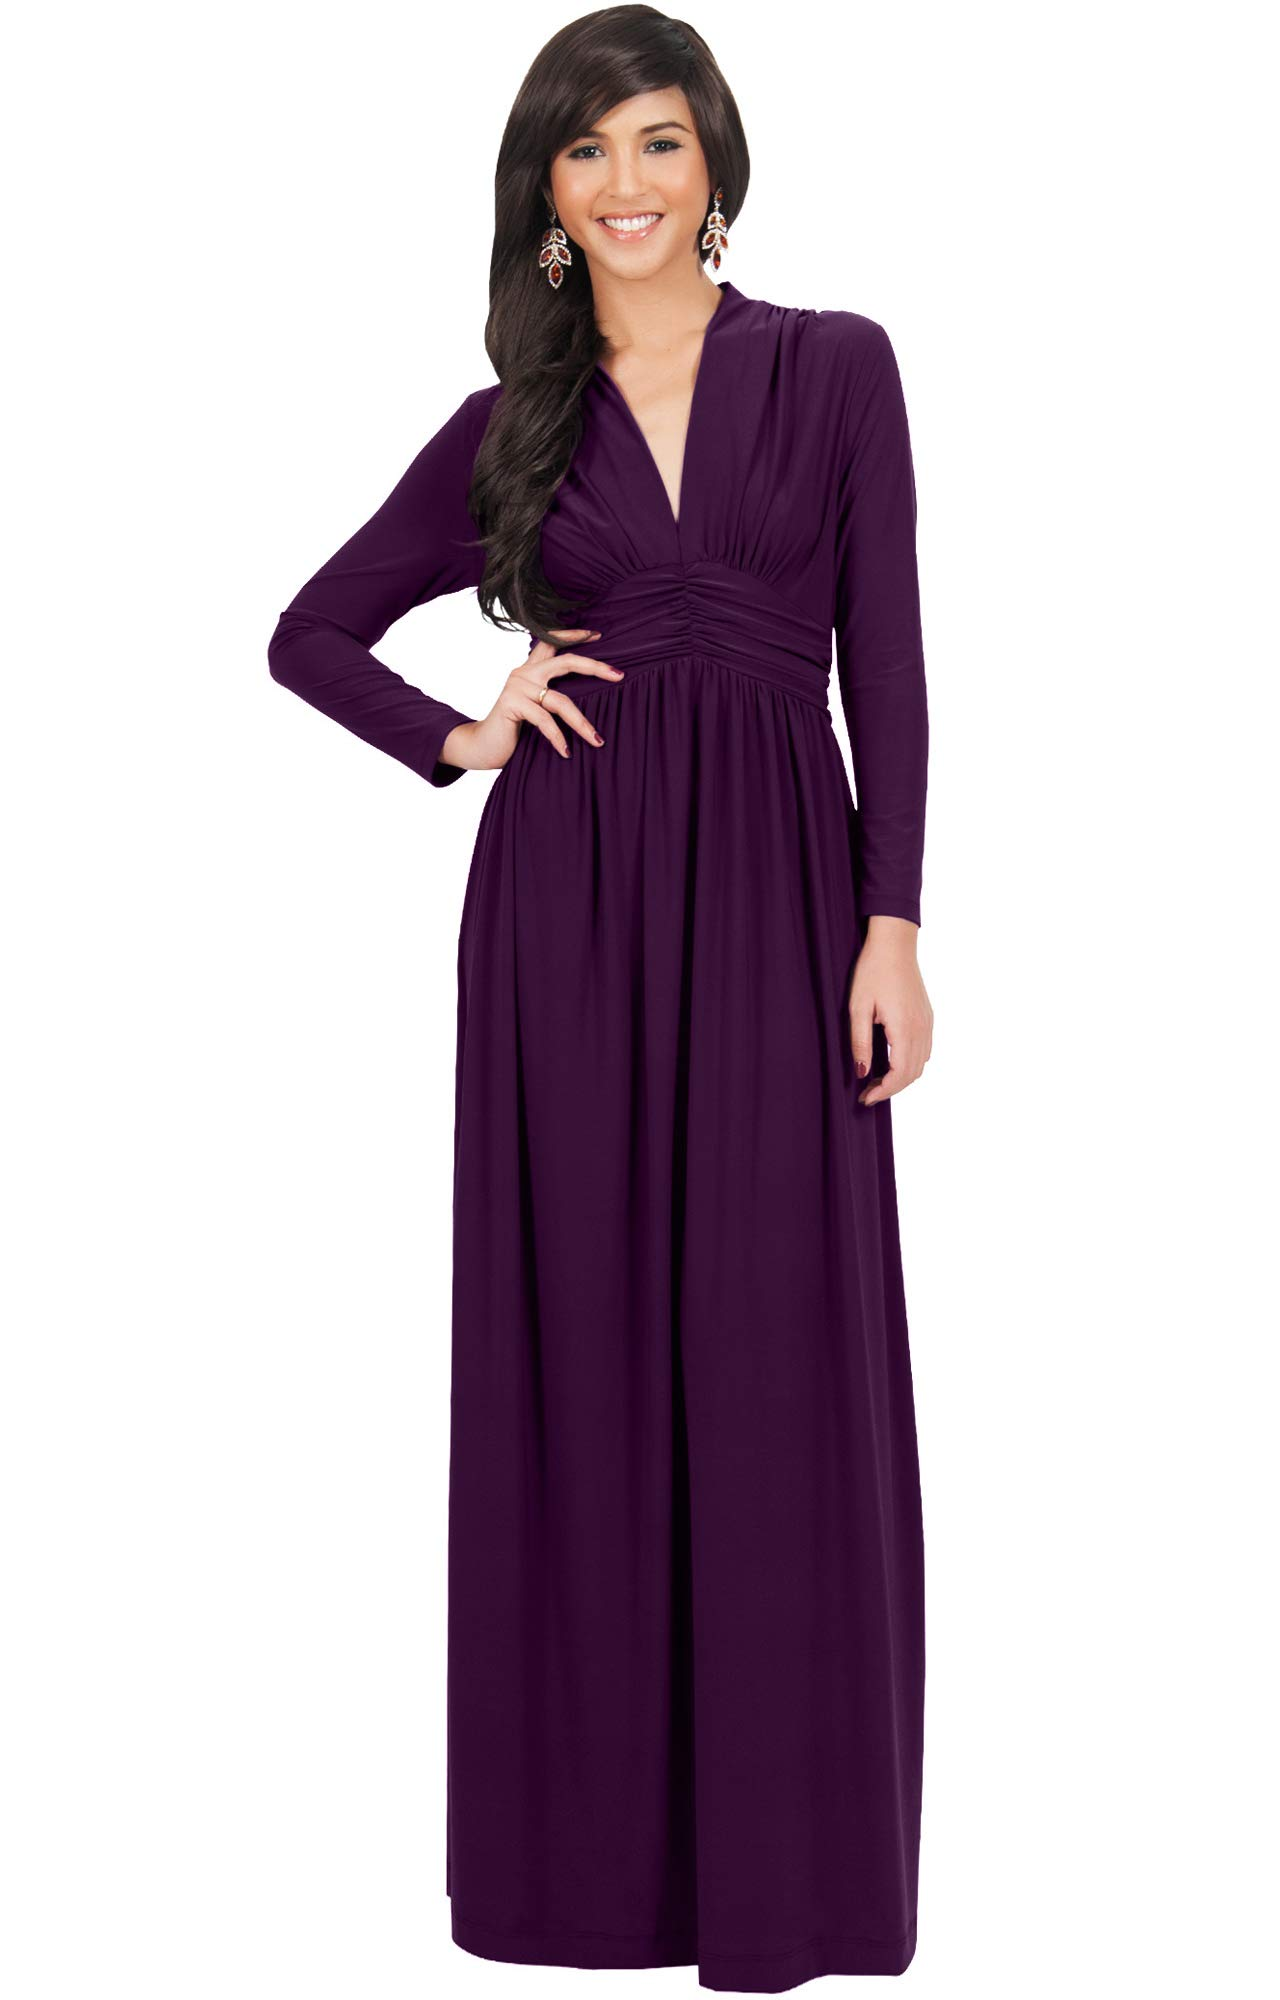 c5a5042d09 KOH KOH Womens Long Sleeve Sleeves Vintage V-Neck Autumn Fall Winter Formal  Evening Casual Flowy Maternity Abaya Muslim Islamic Cute Gown Gowns Maxi  Dresses ...